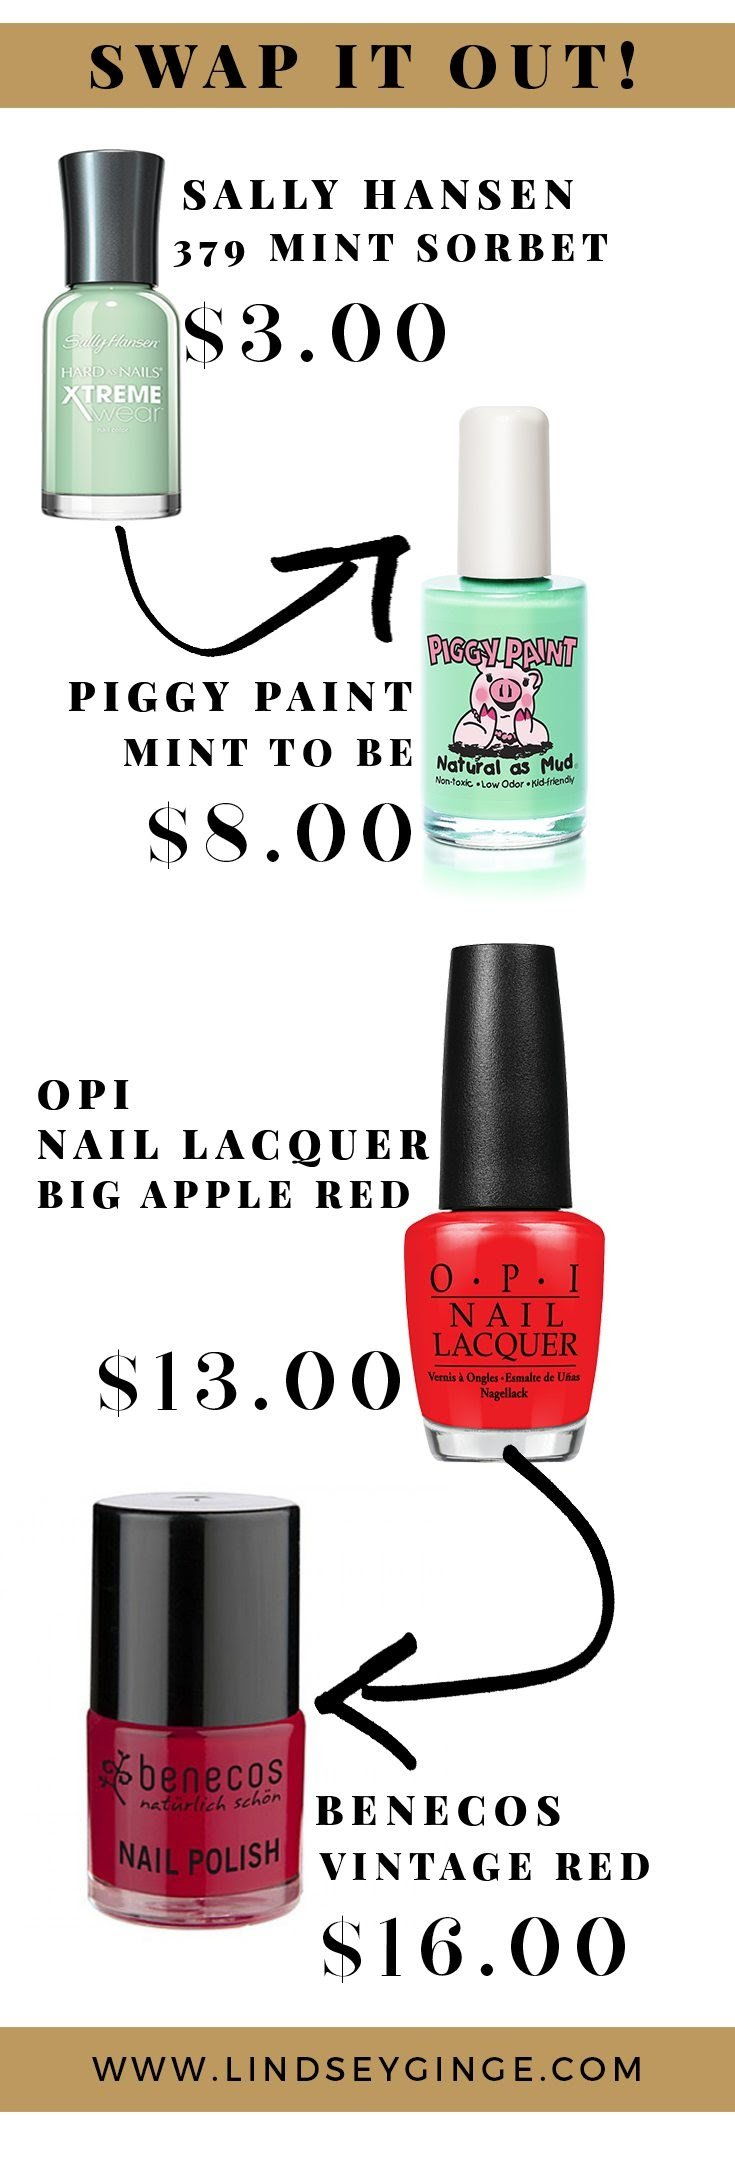 What's In My Nail Polish? | Chemicals to Avoid | Sustainably Savvy